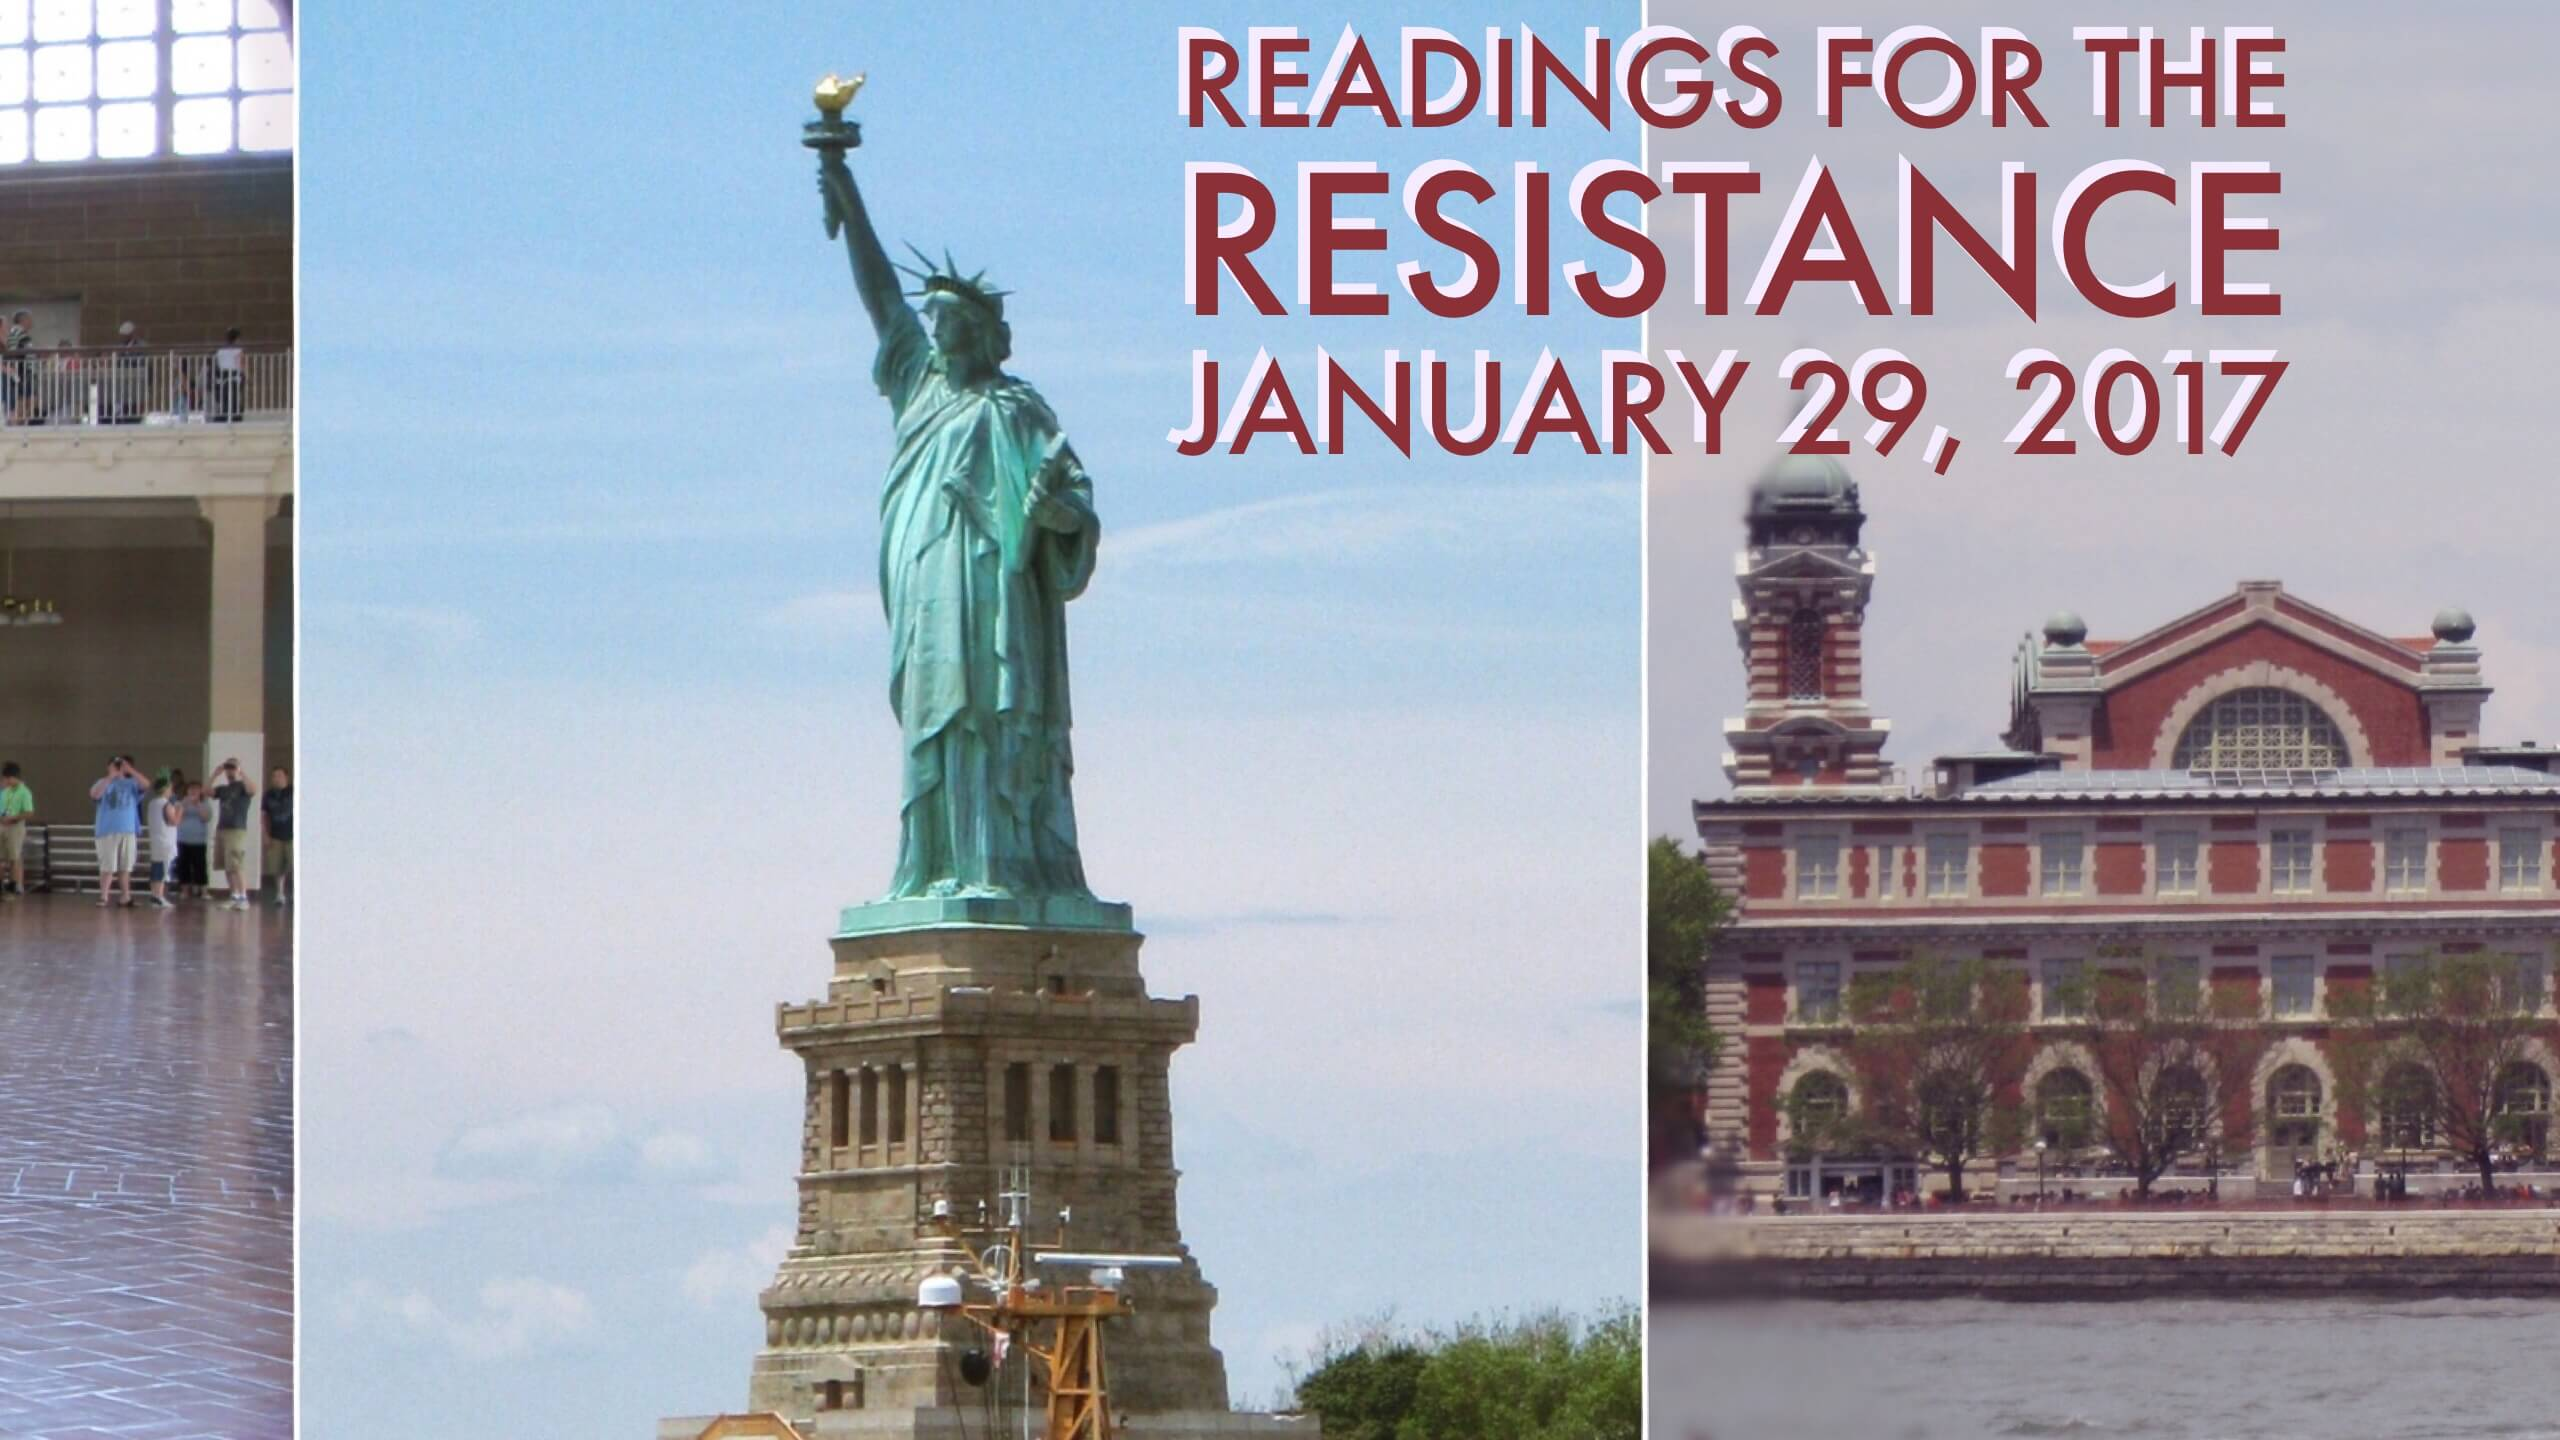 readings for the resistance 1-29-2017